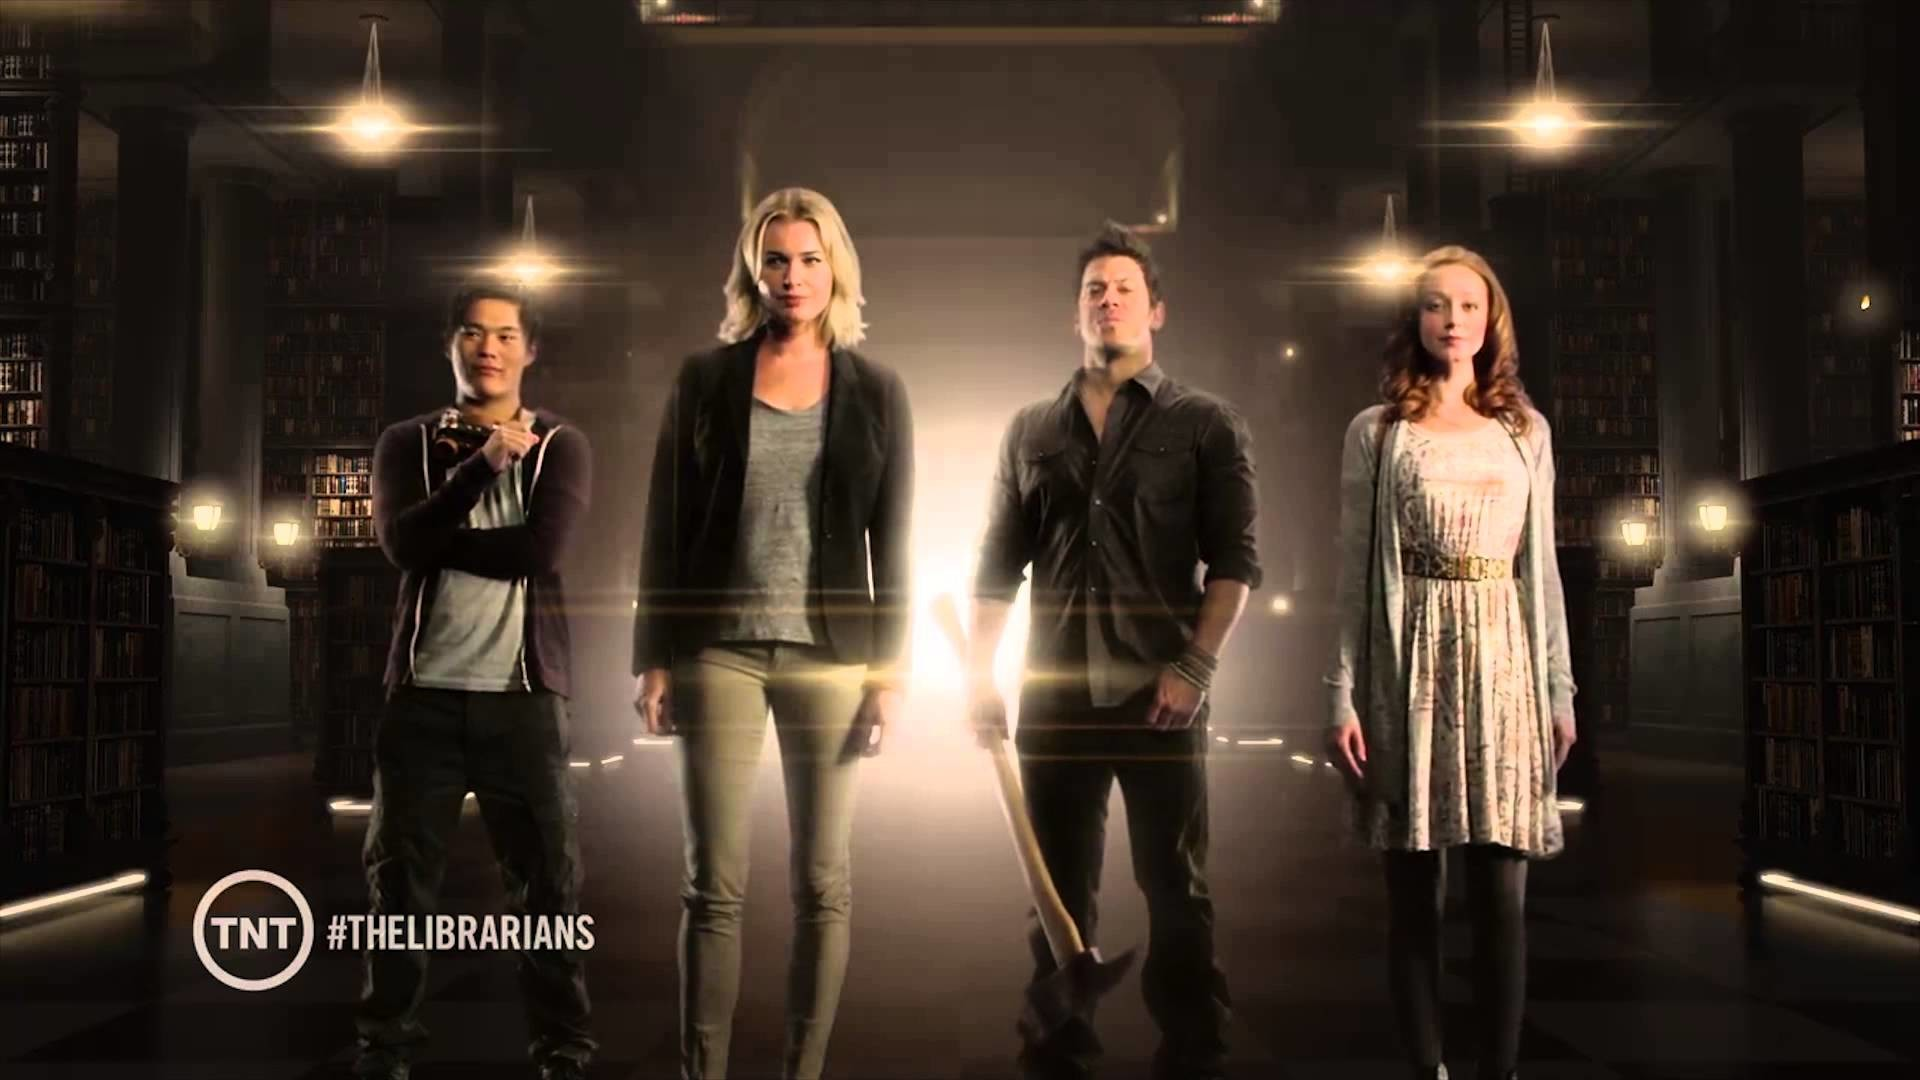 1920x1080 The Librarians